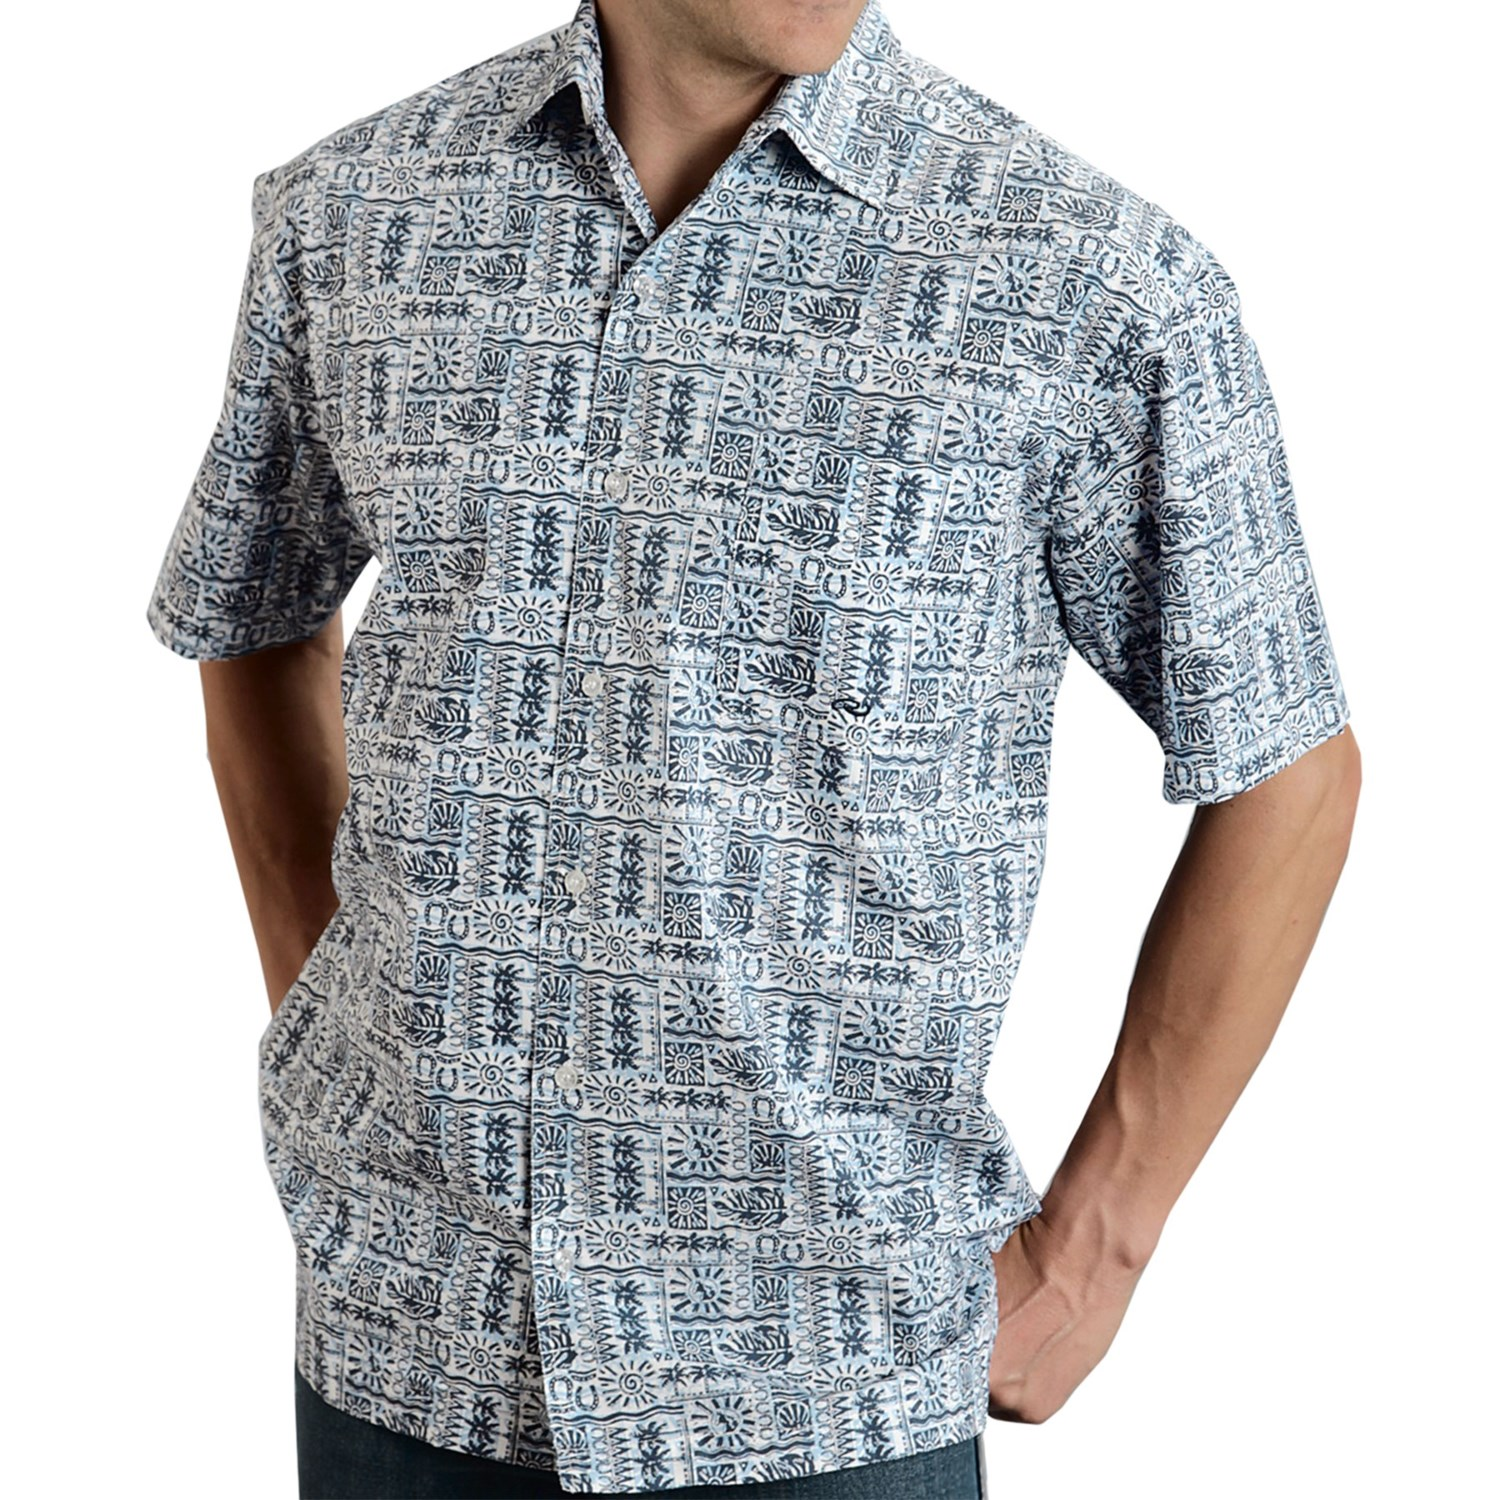 Shop online for Men's Hawaiian Shirts at bierek.tk Find casual button-down shirts with tropical prints. Free Shipping. Free Returns. All the time.